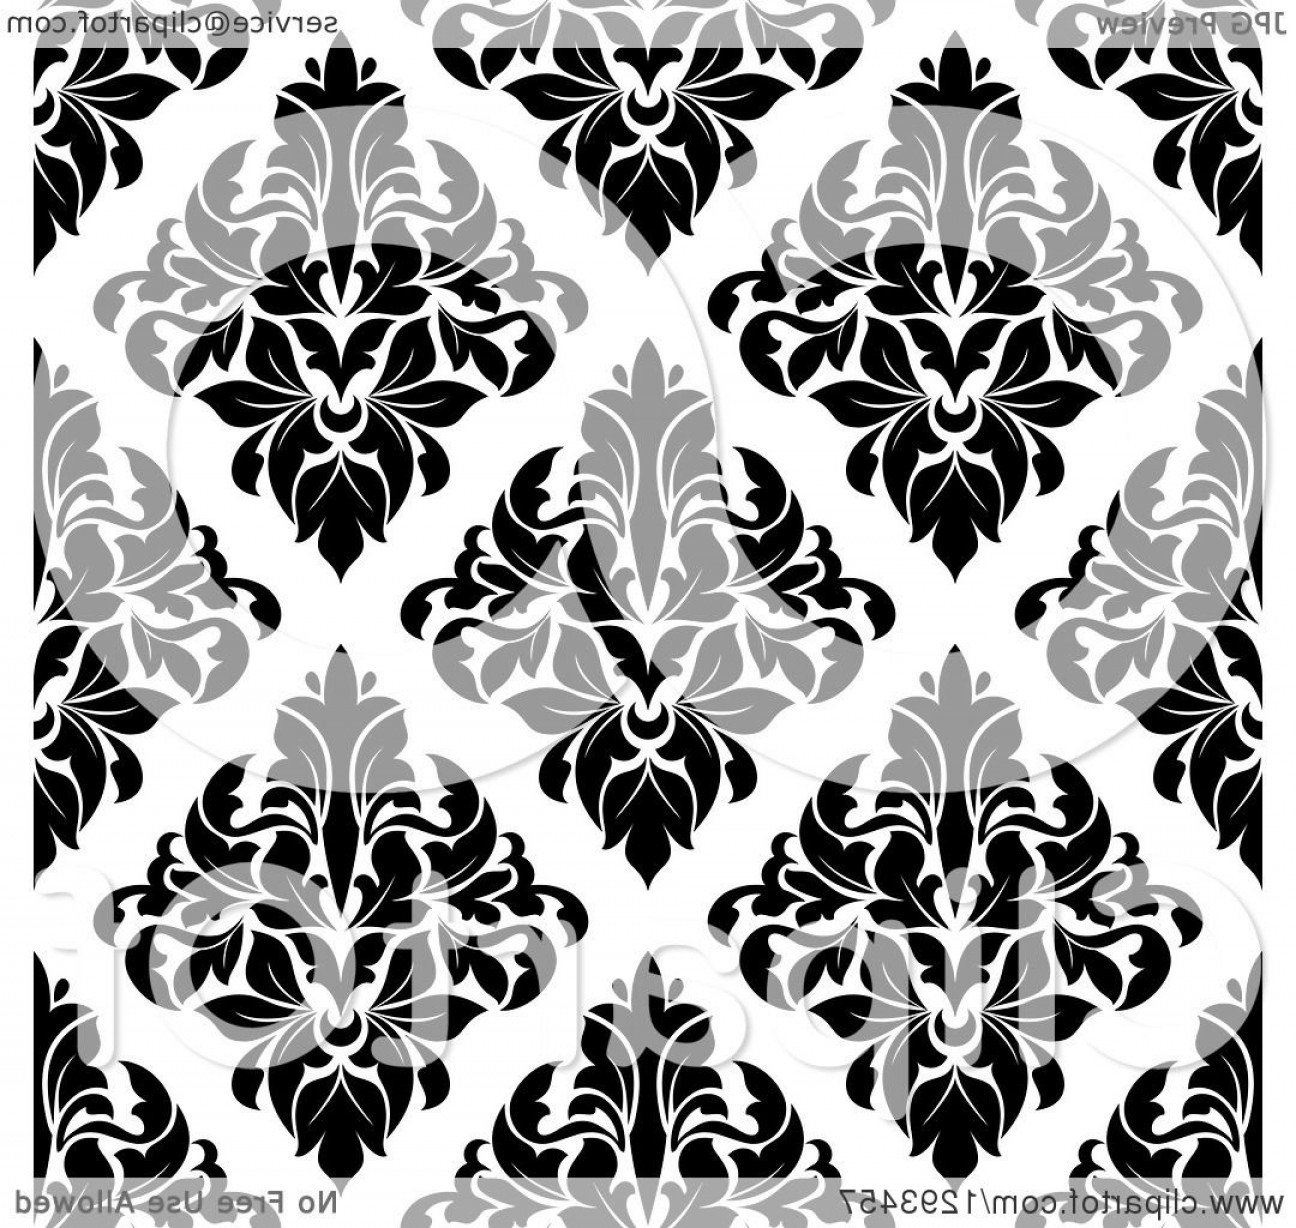 Black Diamond Vector Clip Art: Seamless Pattern Background Of Black Diamond Shaped Damask On White